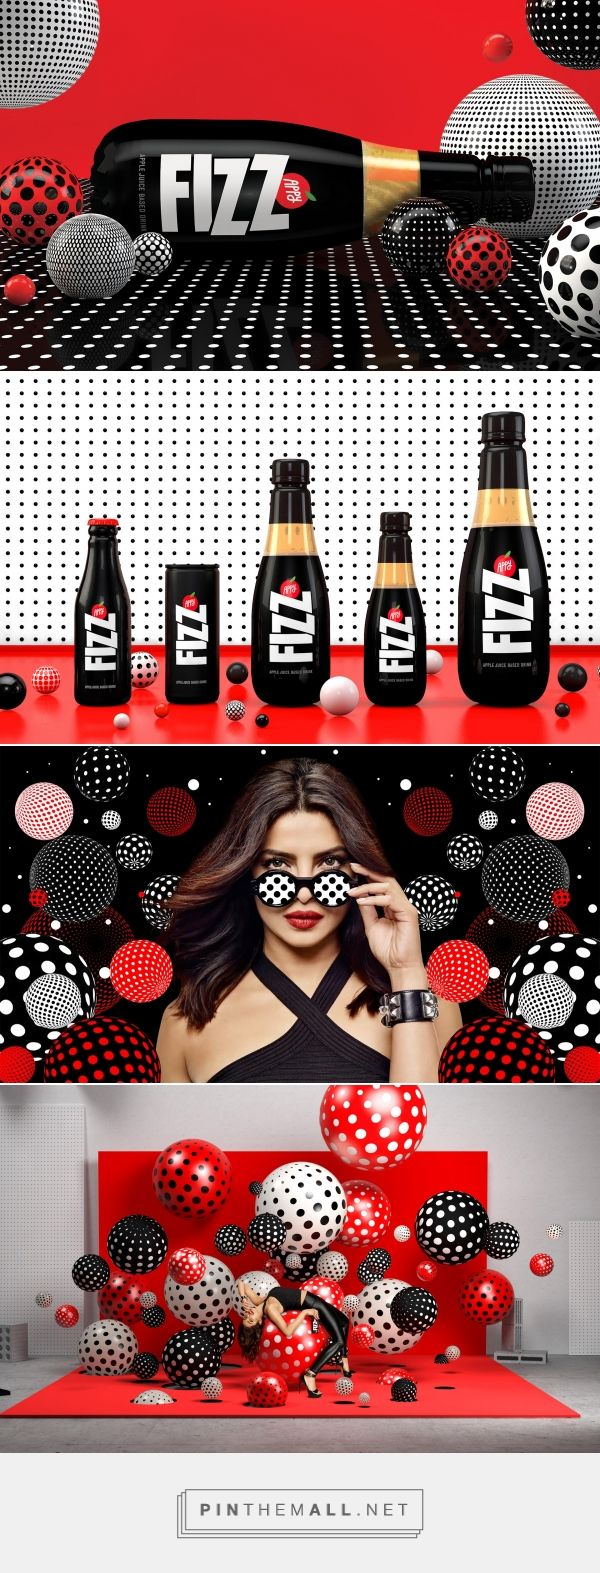 Appy Fizz: Branding and packaging from Sagmeister & Walsh via Print Magazine curated by Packaging Diva PD.  New Appy Fizz identity visualizes carbonated bubbles through a dynamic graphic language of circles and dots.